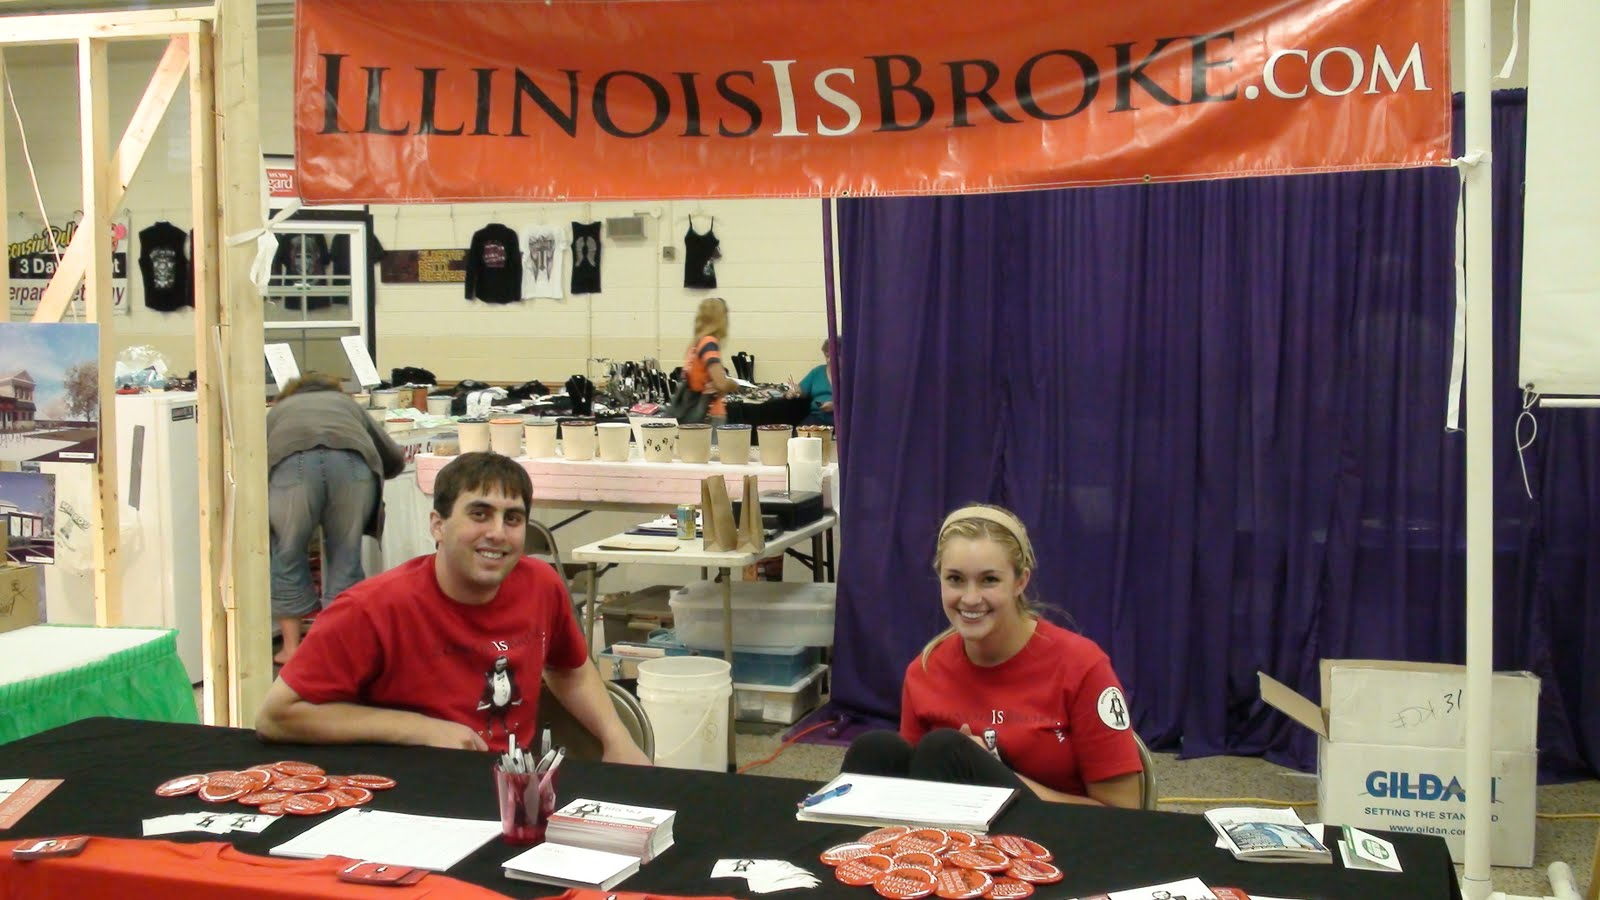 Illinois will county peotone - The Non Partisan Group Illinois Is Broke At The Will County Fair